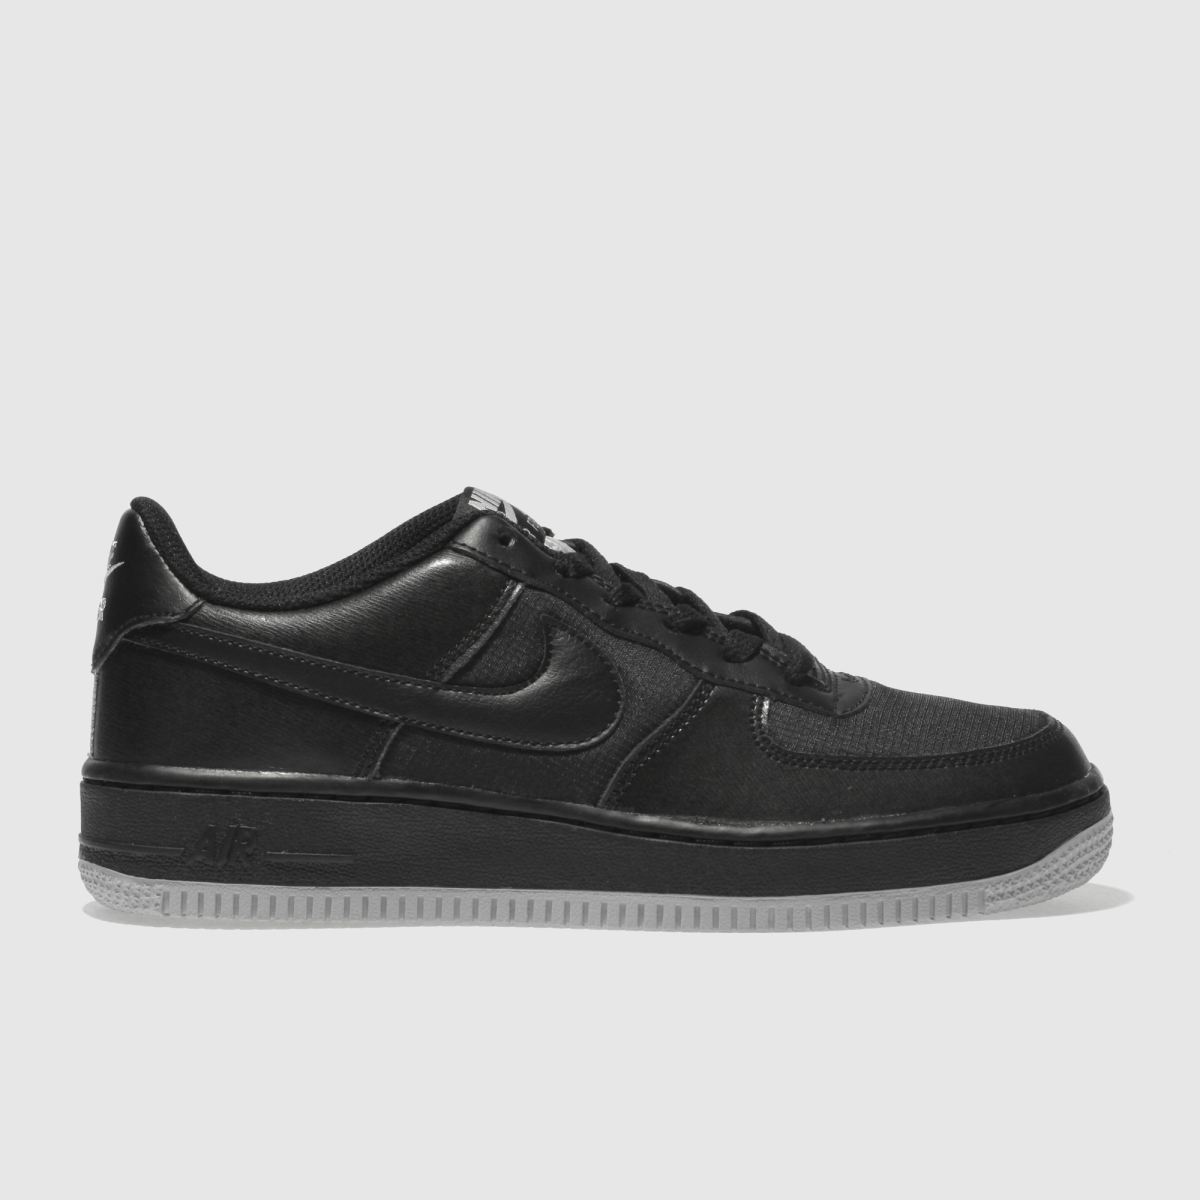 Nike Black & Grey Air Force 1 Lv8 Youth Trainers